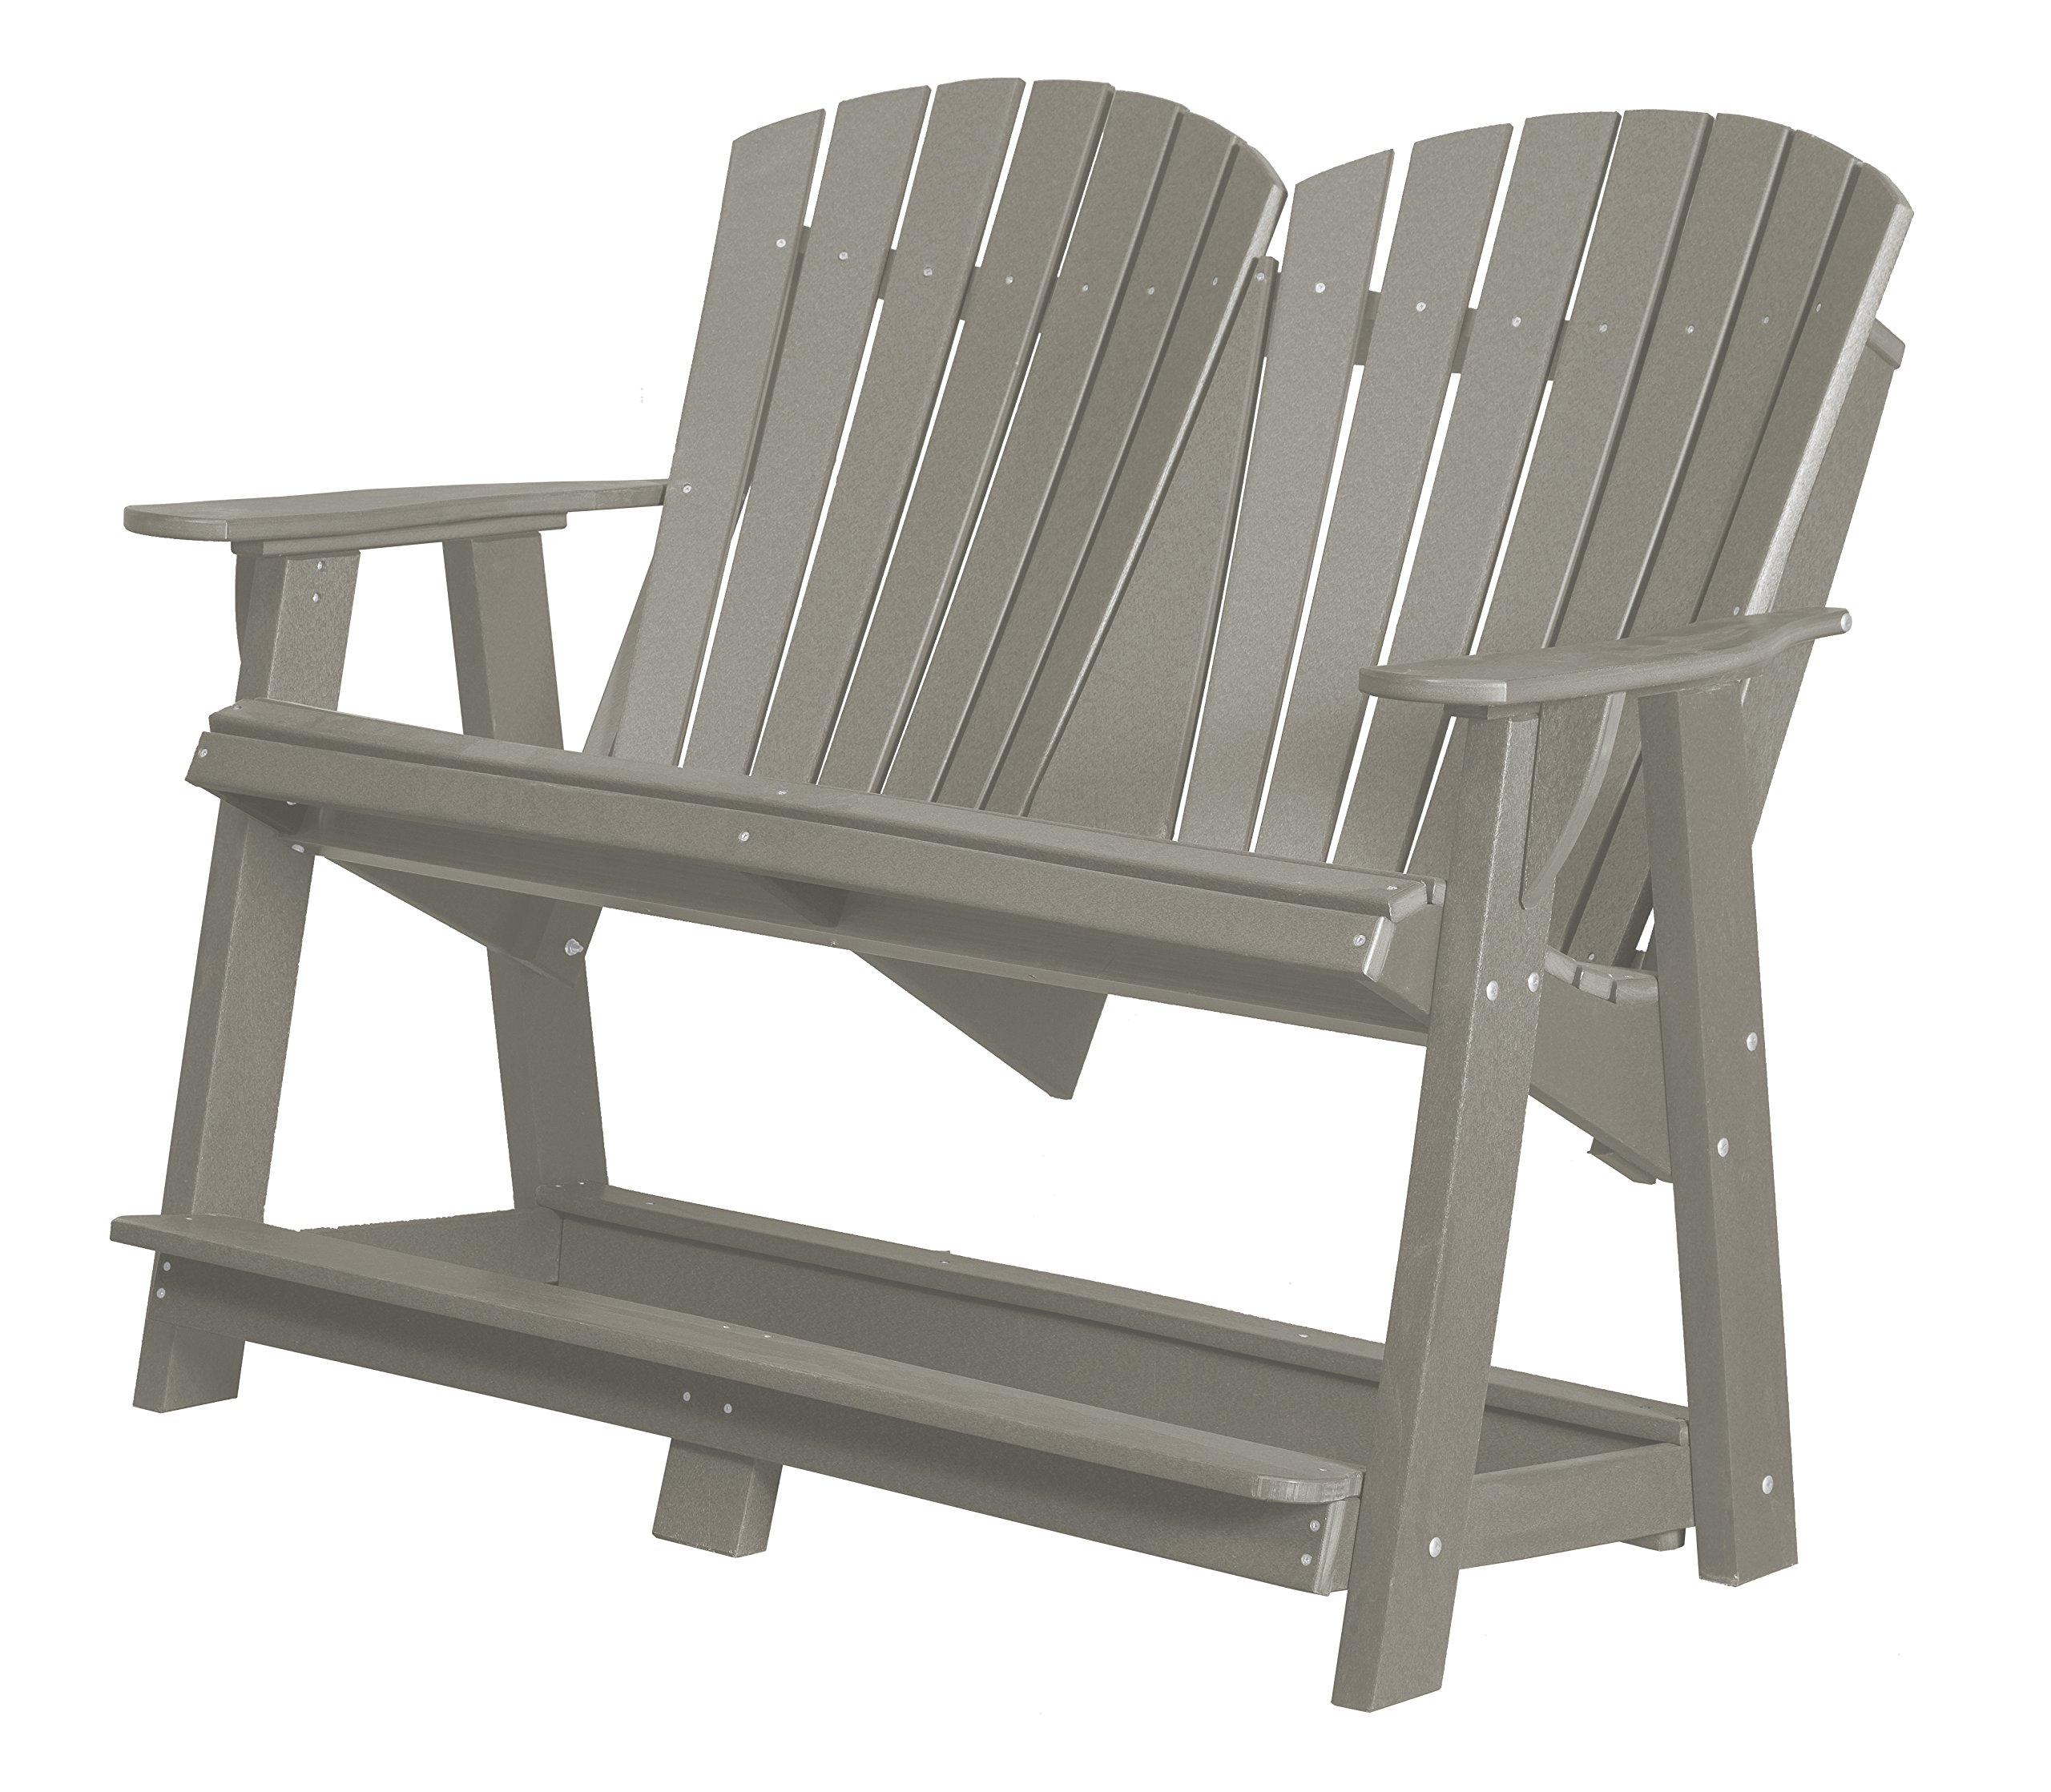 Little Cottage Company Heritage Double High Adirondack, Light Gray by Little Cottage Company